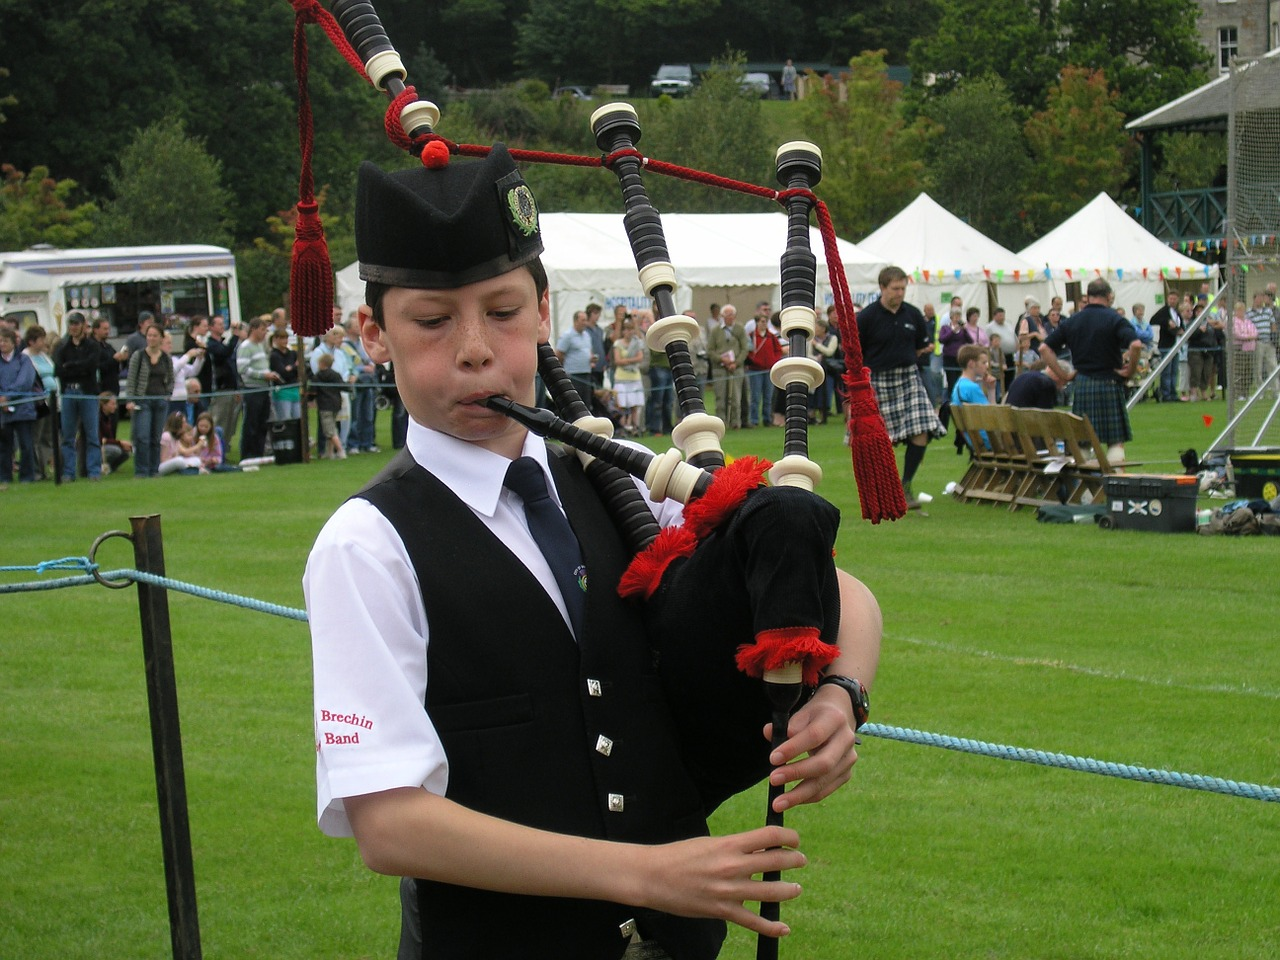 The Grandfather Mountain Highland Games is a historic celebration of Celtic culture